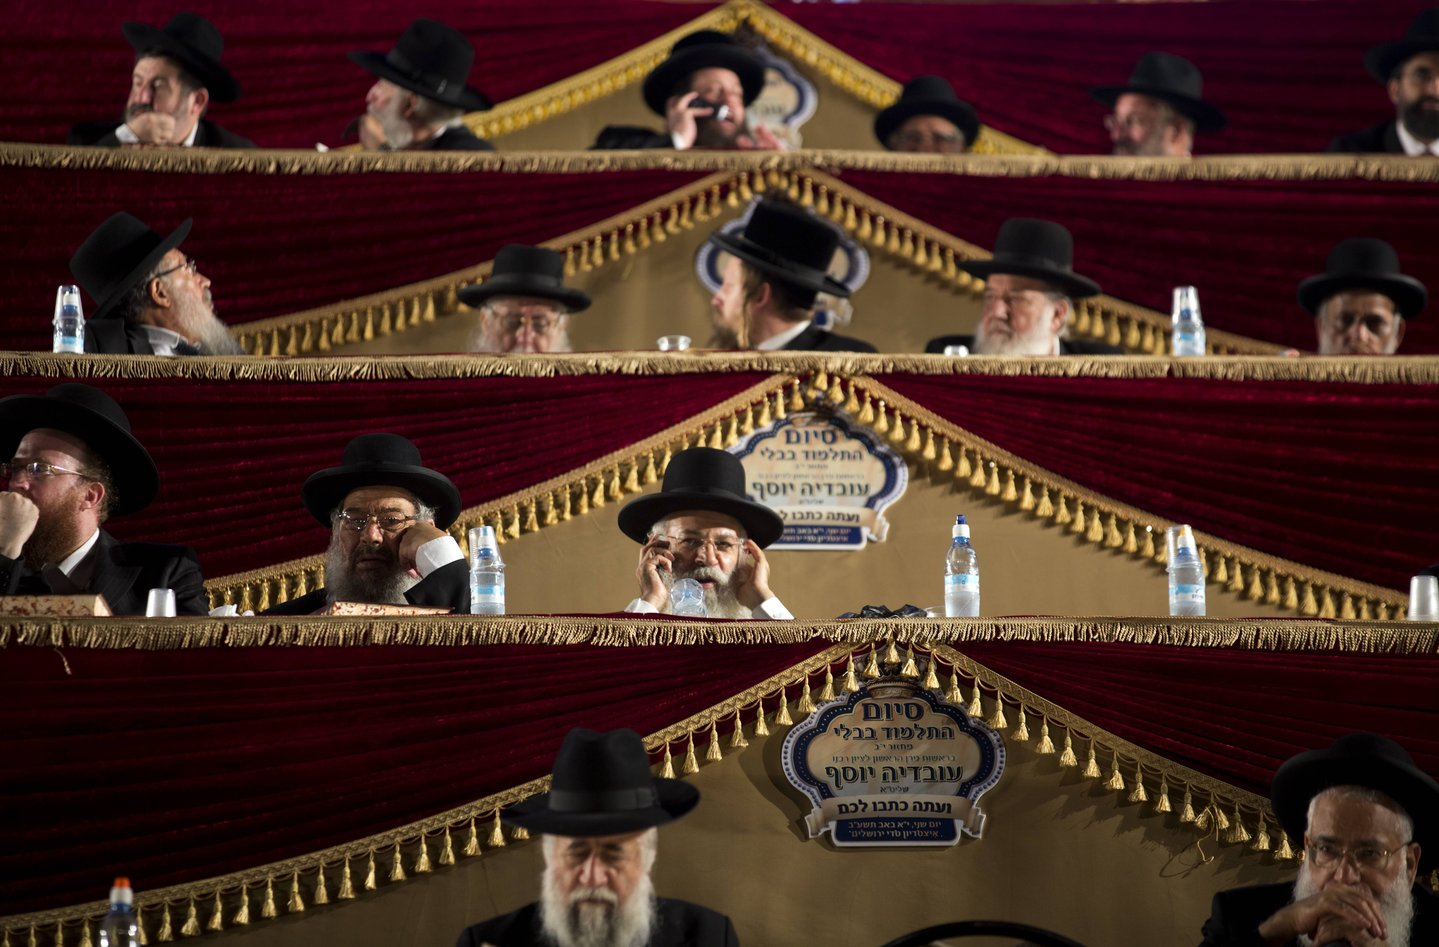 Ultra-Orthodox Jews convene at a sports stadium in Jerusalem July 30, 2012, in a celebration marking the completion of a seven-and-a-half year daily study-cycle of the entire Babylonian Talmud.Tens of thousands of Jews worldwide take part in the 'Daf Yomi' project – literally a 'daily page' of study of the ancient text of Jews law and tradition, perhaps the most central composition of rabbinic literature.AFP PHOTO/MENAHEM KAHANA